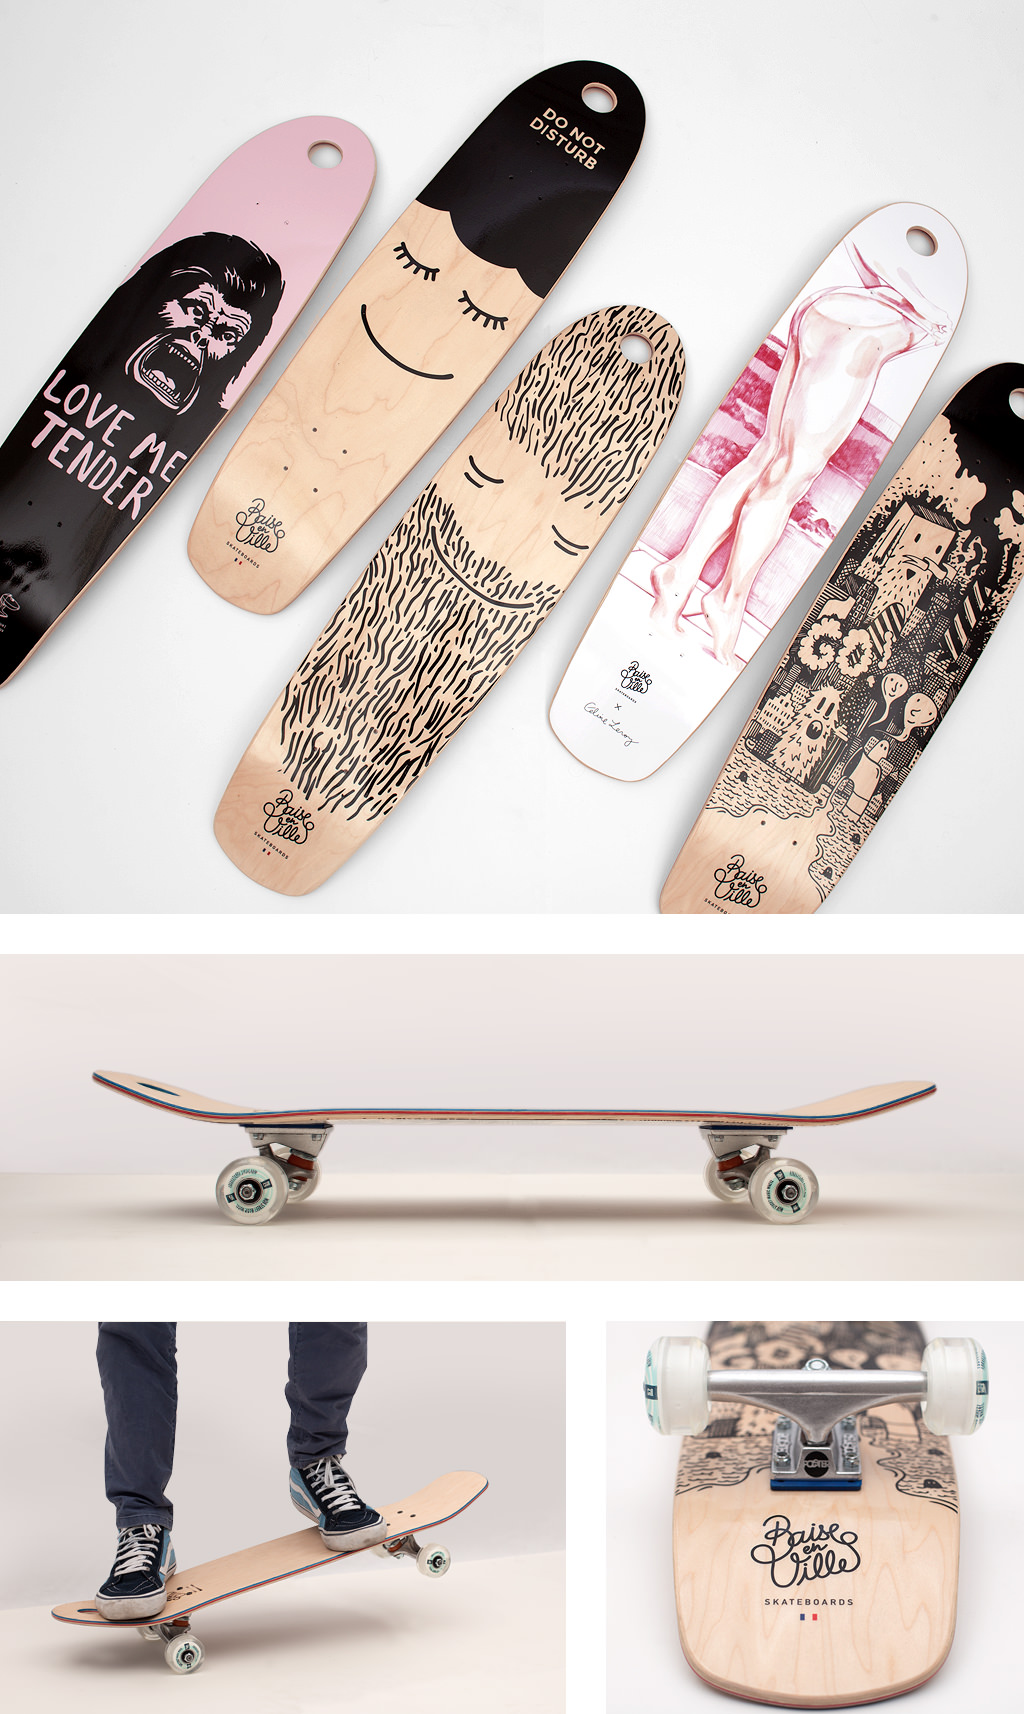 Baise en ville skateboards par Laurent Pierre